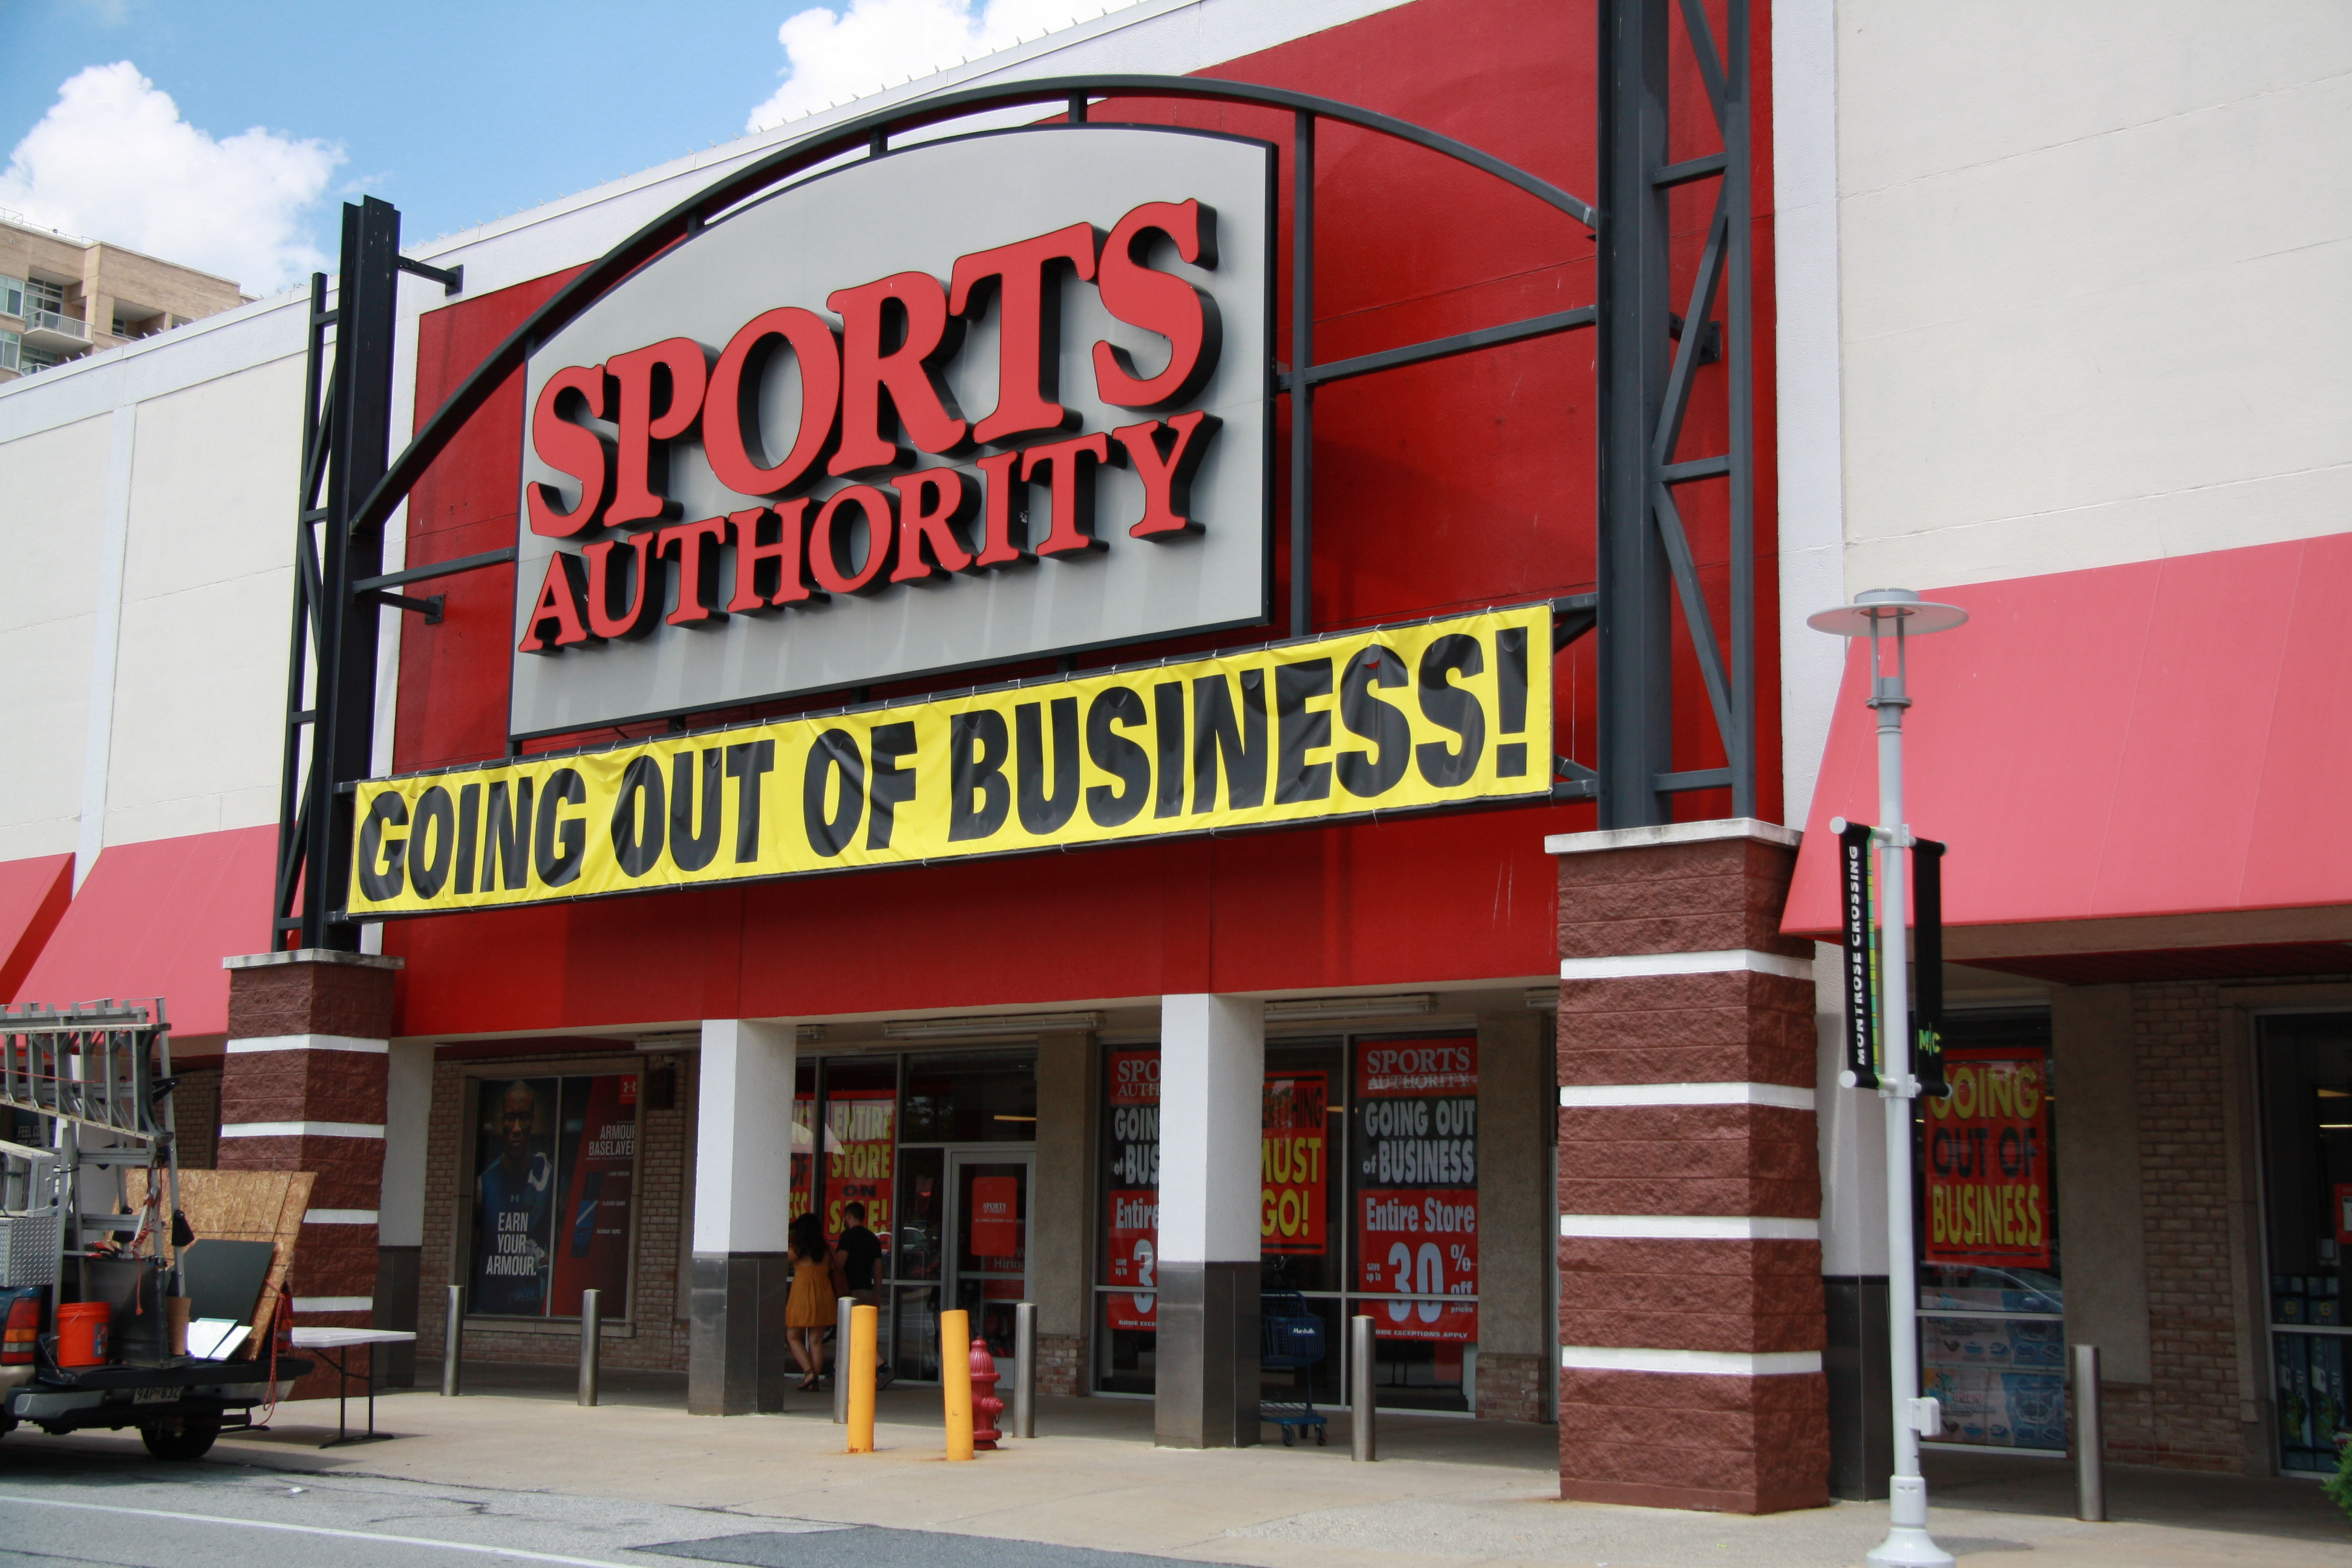 sports authority business going august before rockville closure holding notes web bethesda beat montrose authoirty crossing having